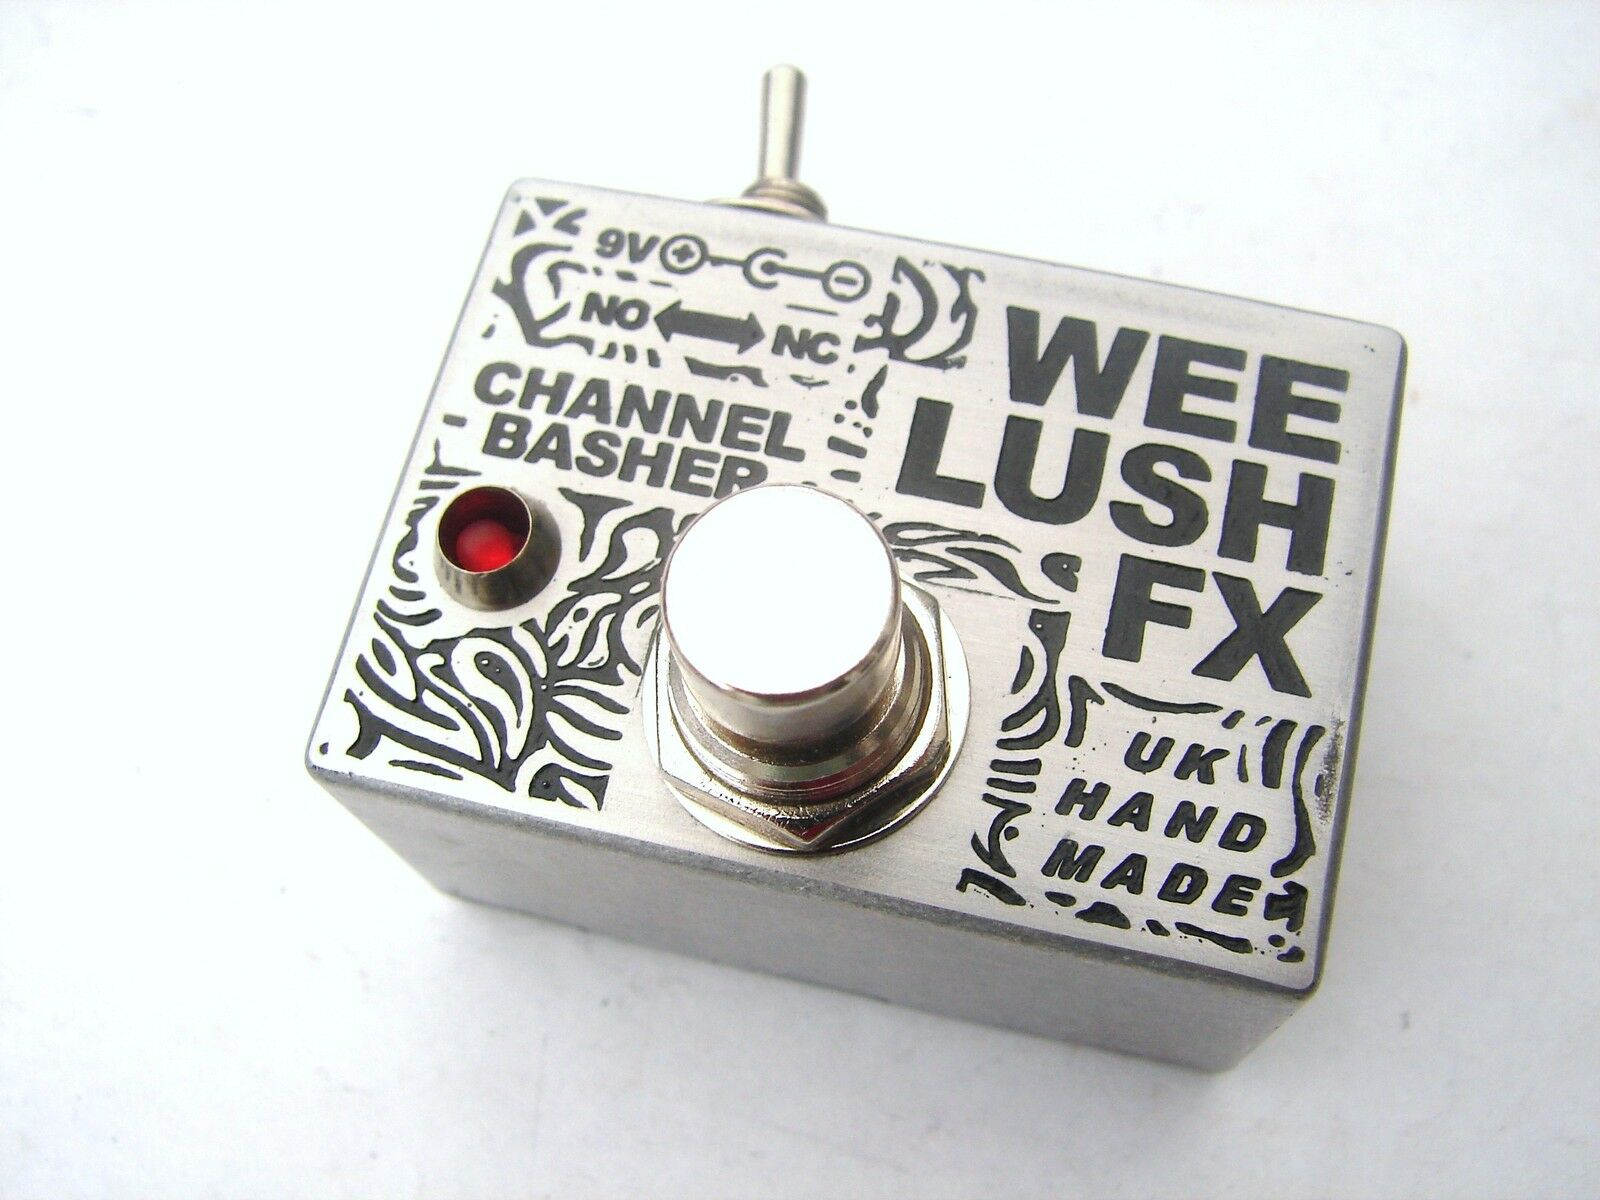 Wee Lush FX Channel Amp Switcher Selector Effects Pedal Switch Box Footswitch